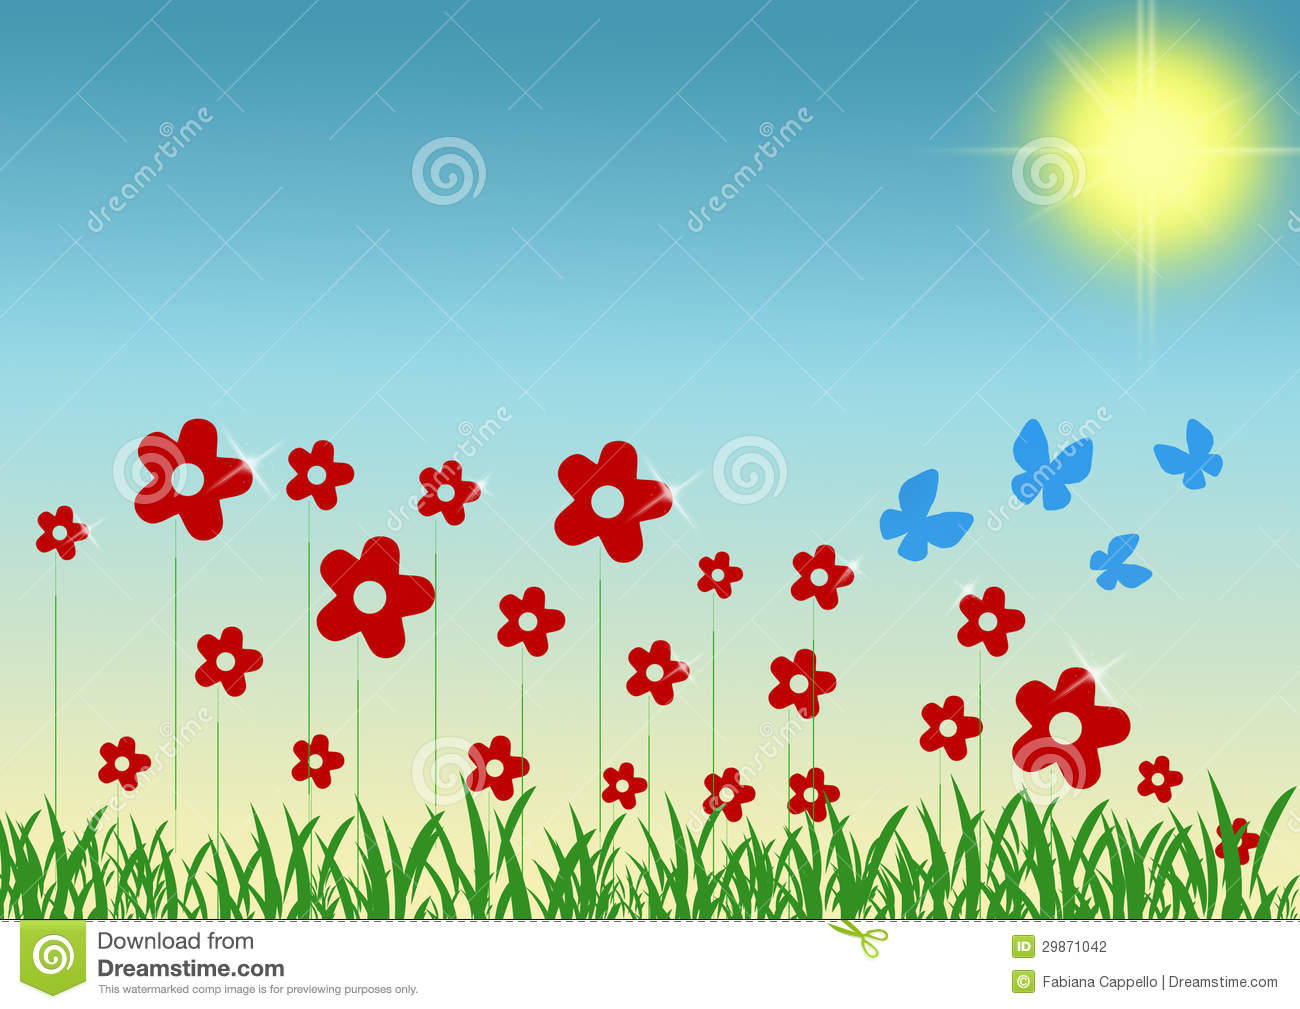 Spring day clipart.